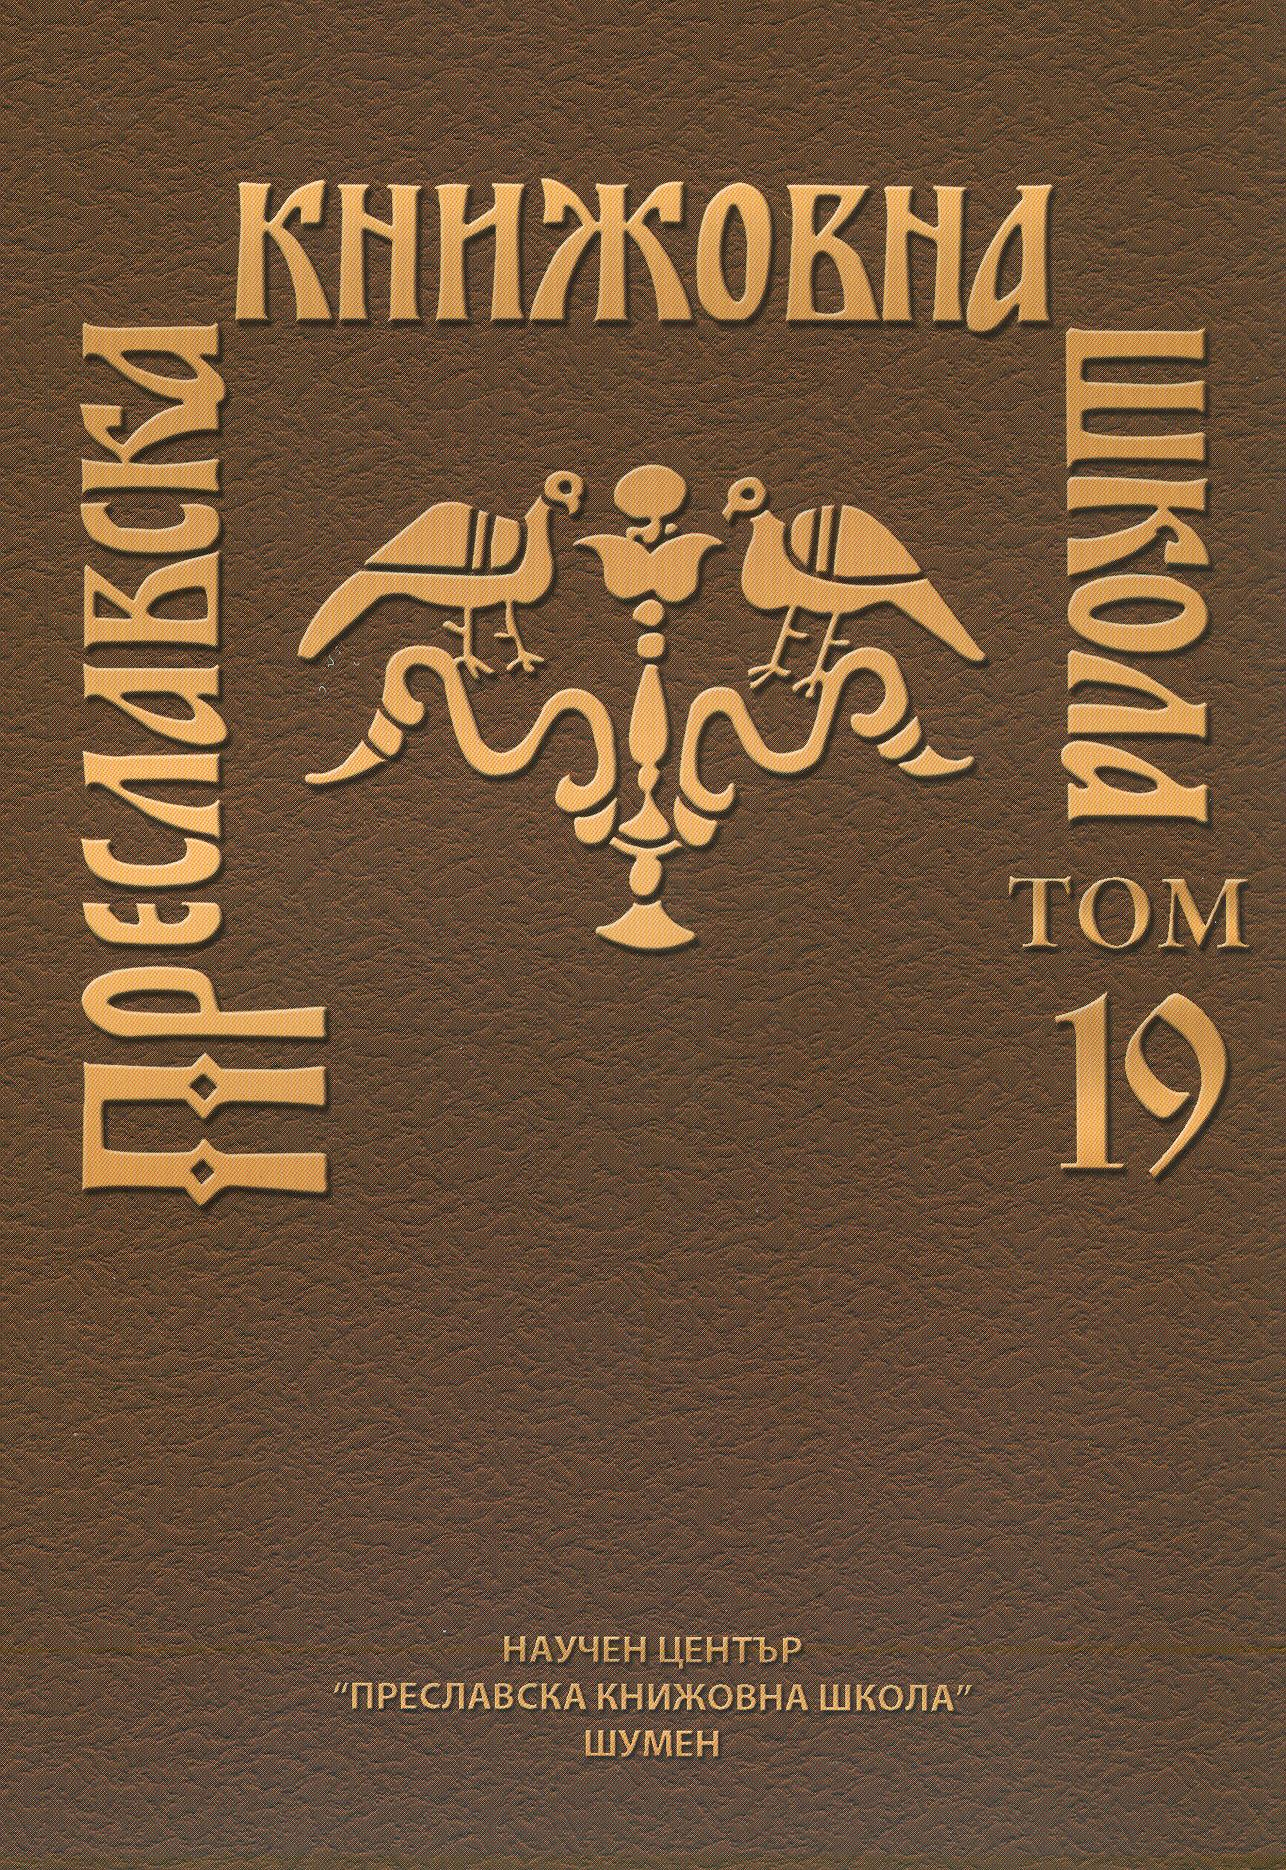 DEVELOPMENT OF THEOLOGICAL POLITICAL THOUGHT IN BULGARIA AT THE END OF 9TH AND BEGINNING OF 10TH CENTURY Cover Image